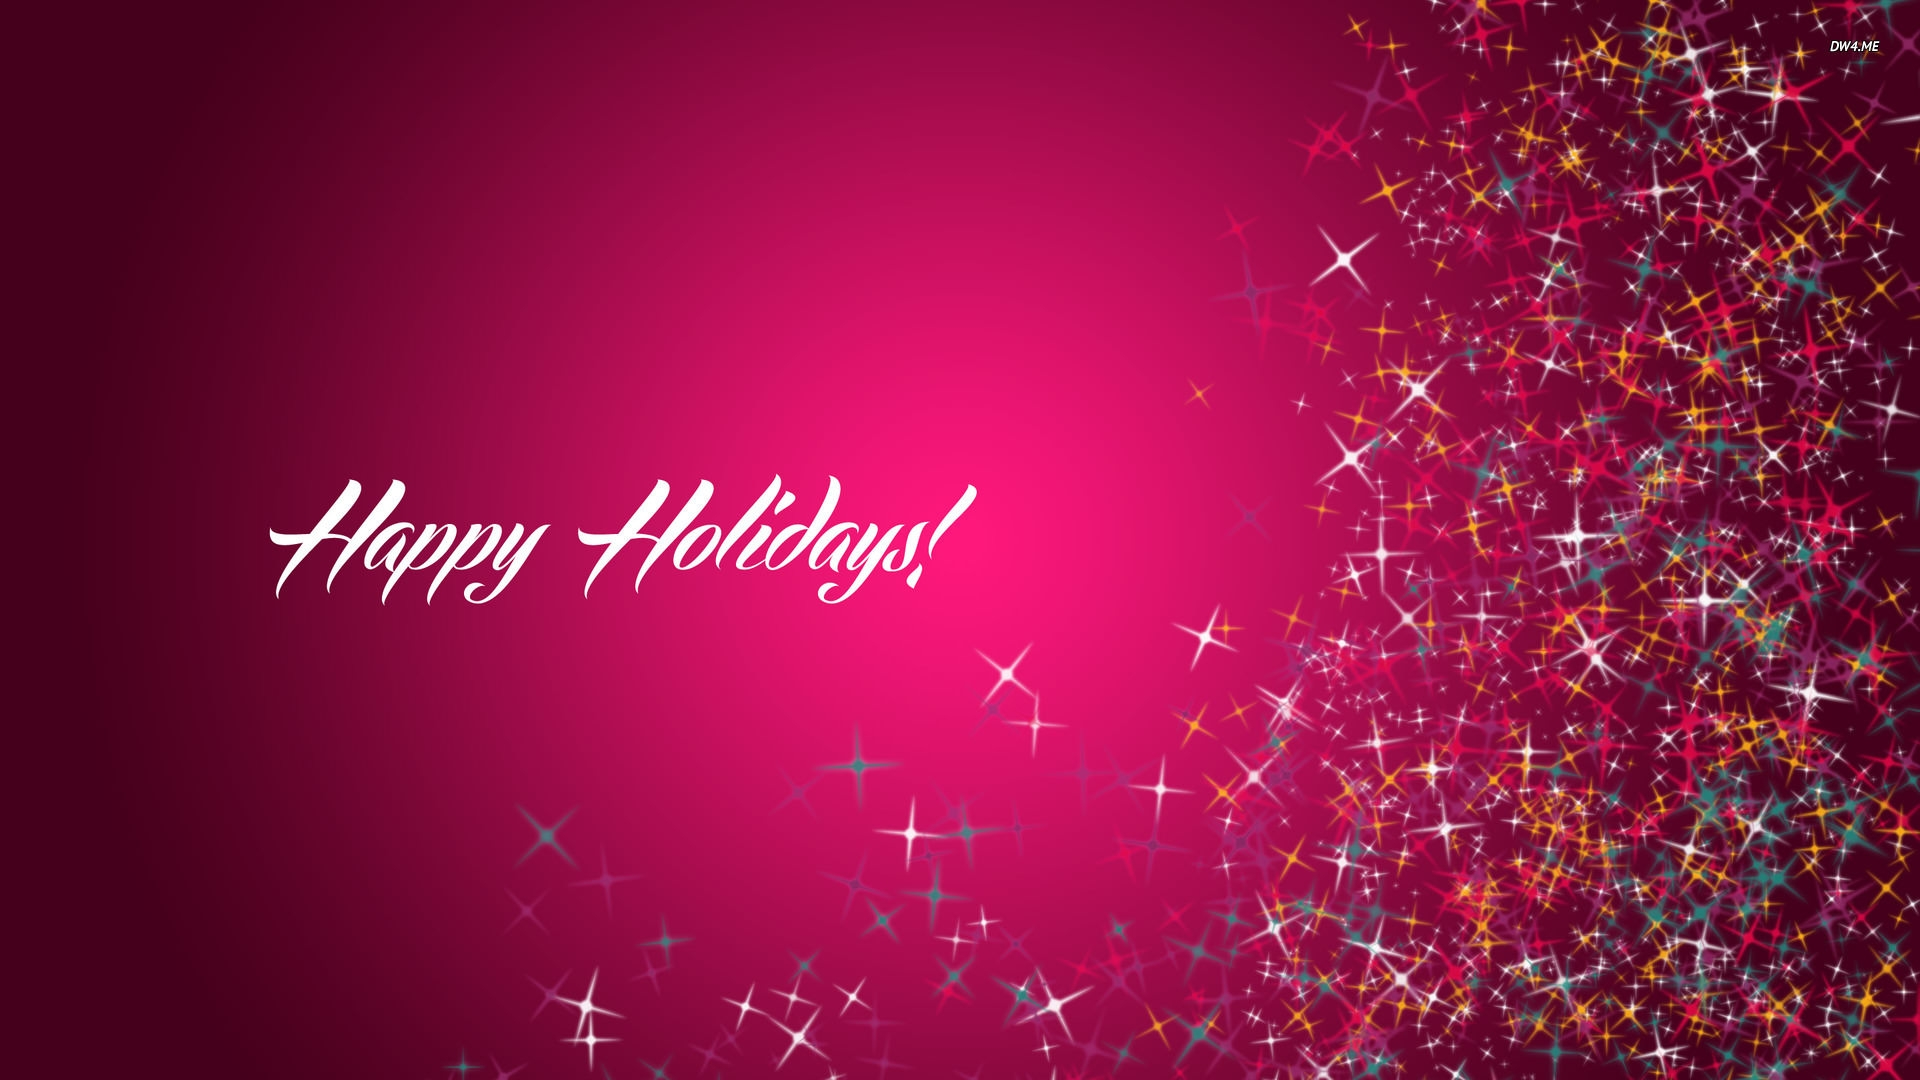 Simple Holiday Wallpaper